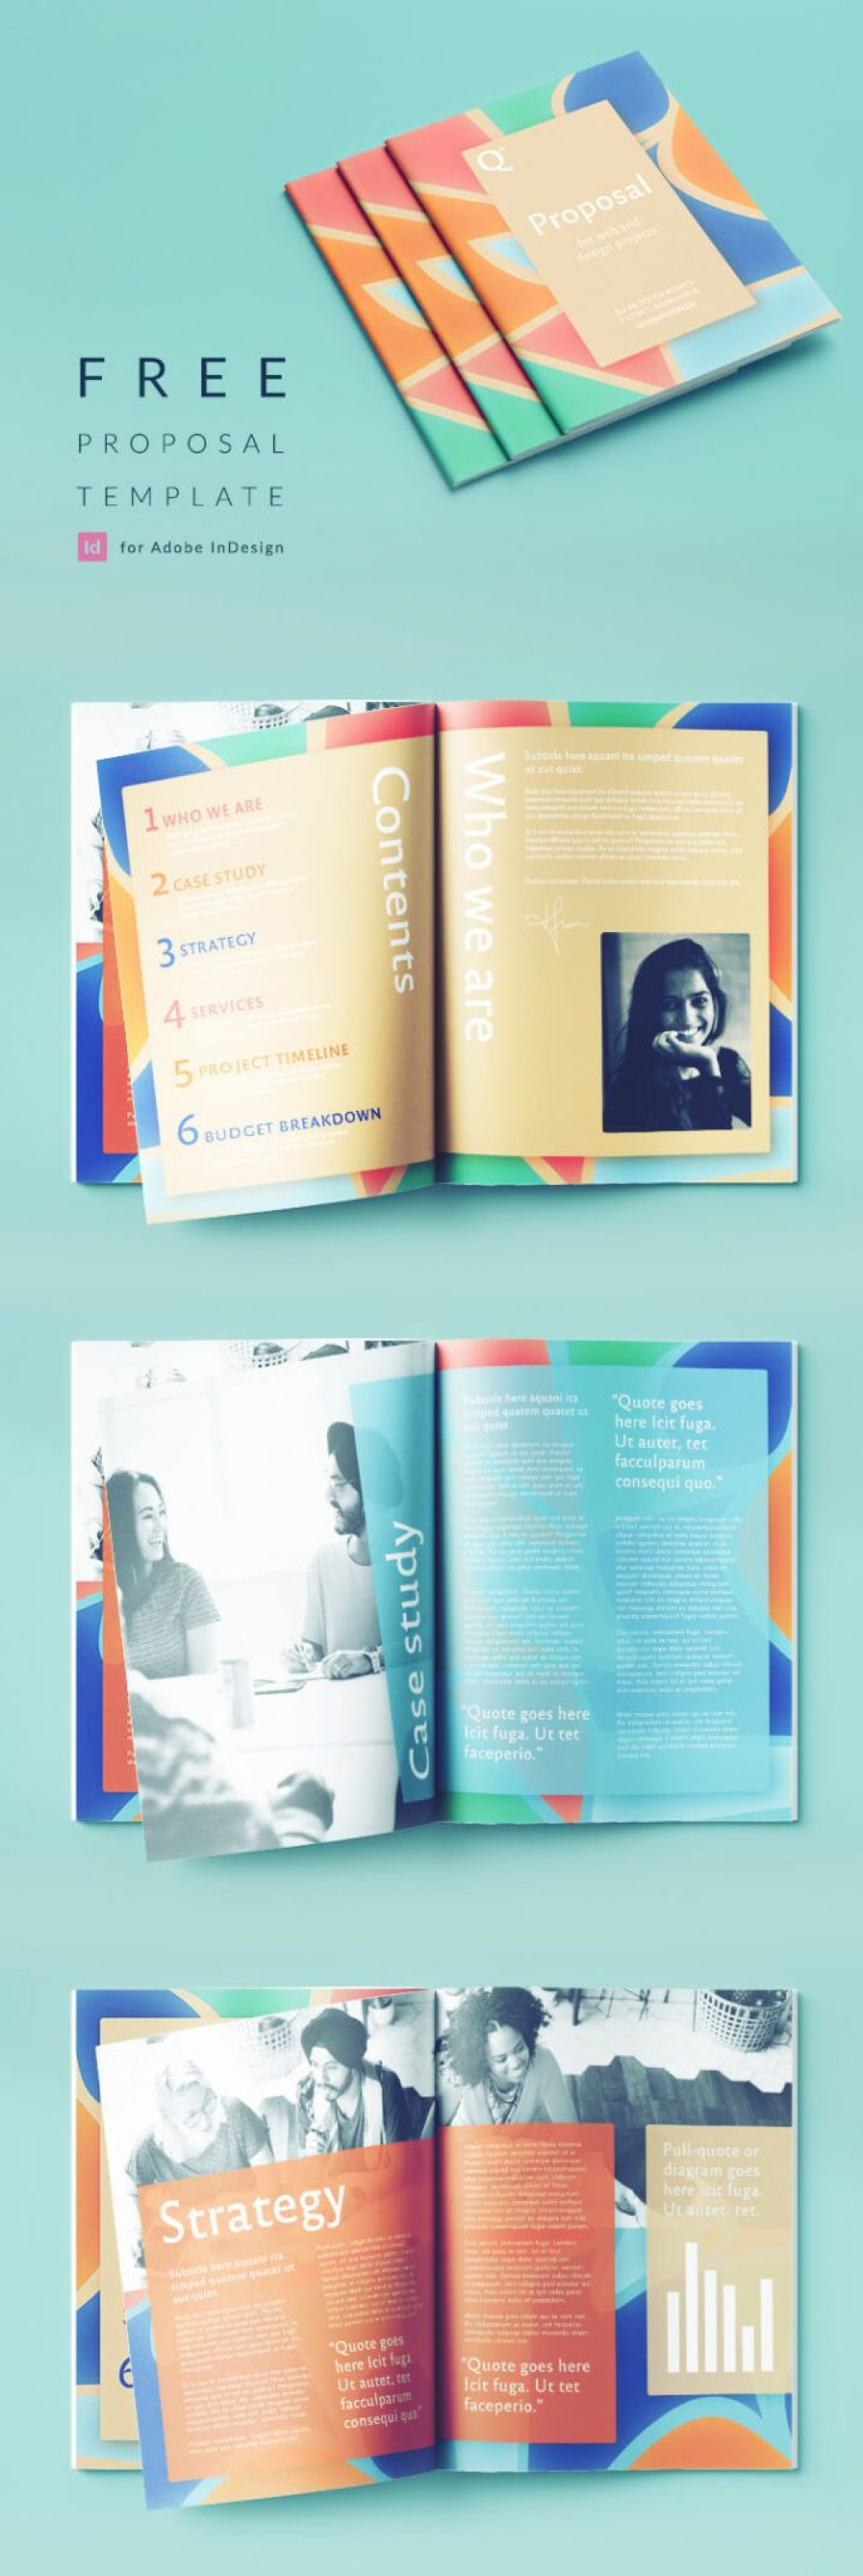 008 Exceptional Free Busines Proposal Template Indesign Concept Large